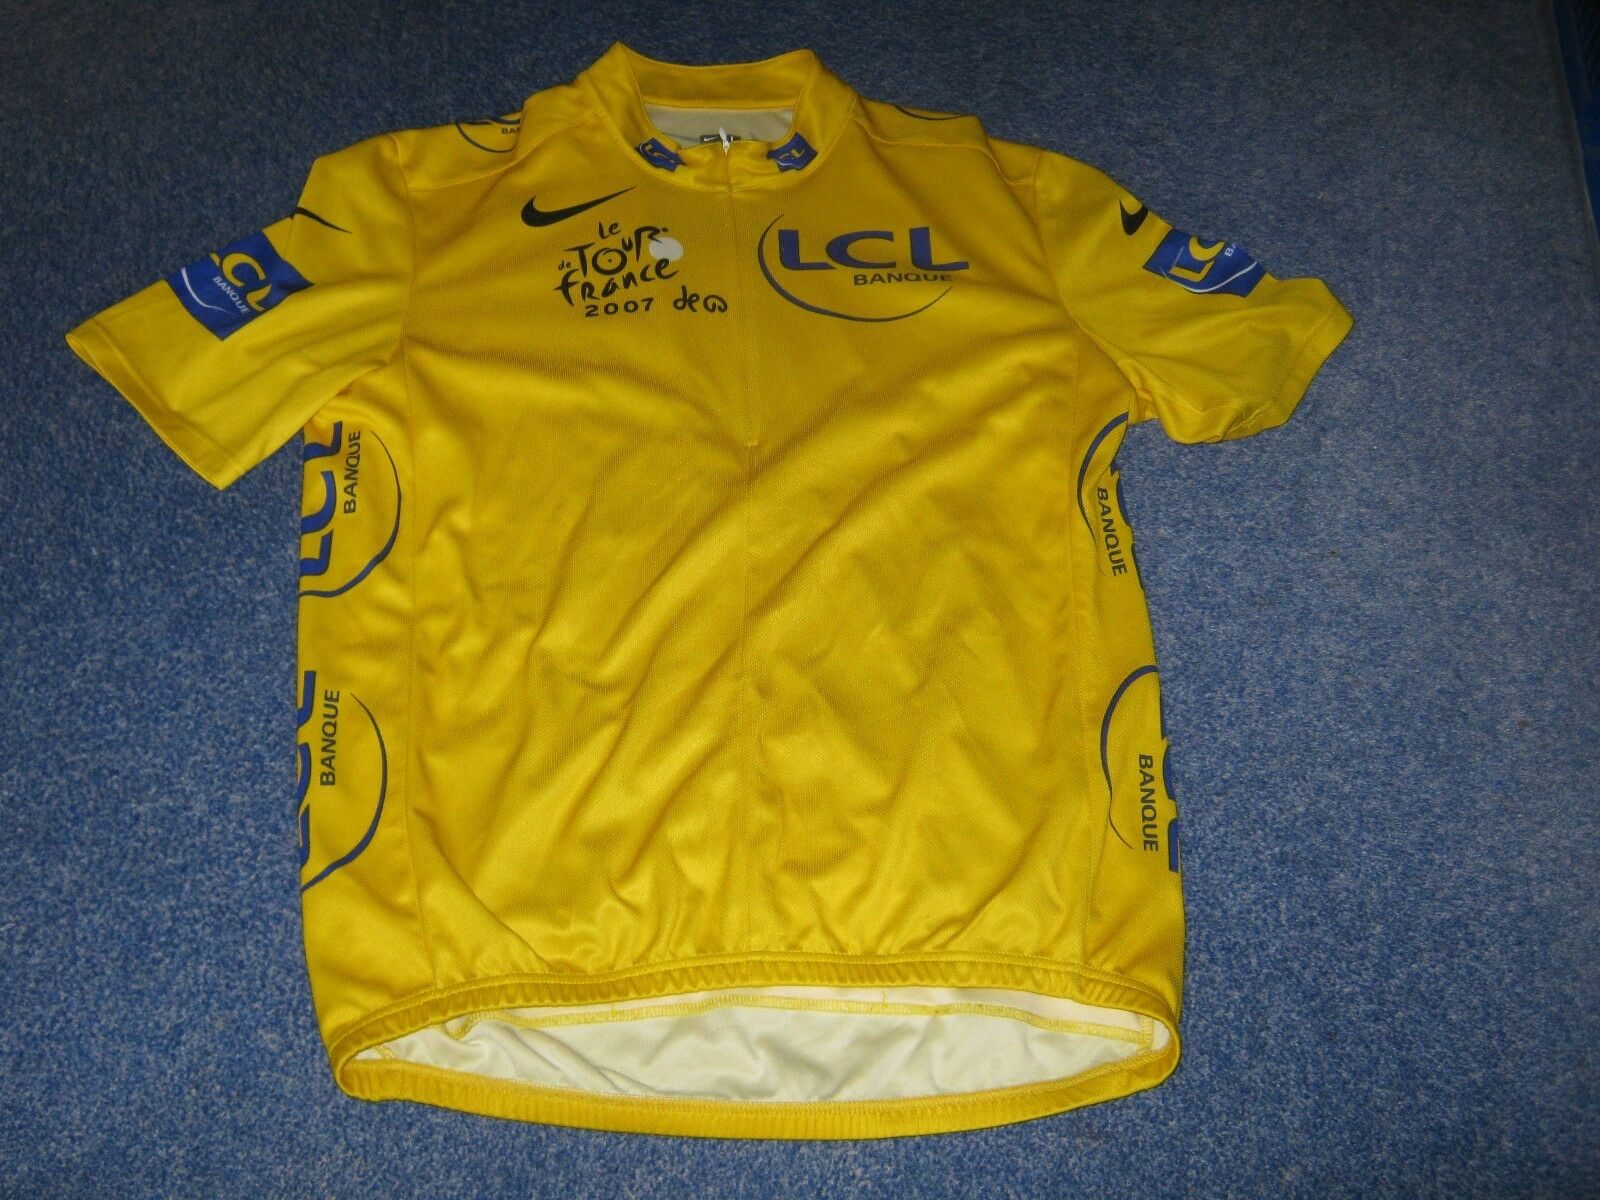 TOUR DE FRANCE 2007 NIKE YELLOW  LEADERS CYCLING JERSEY [Large adult]  hot sale online